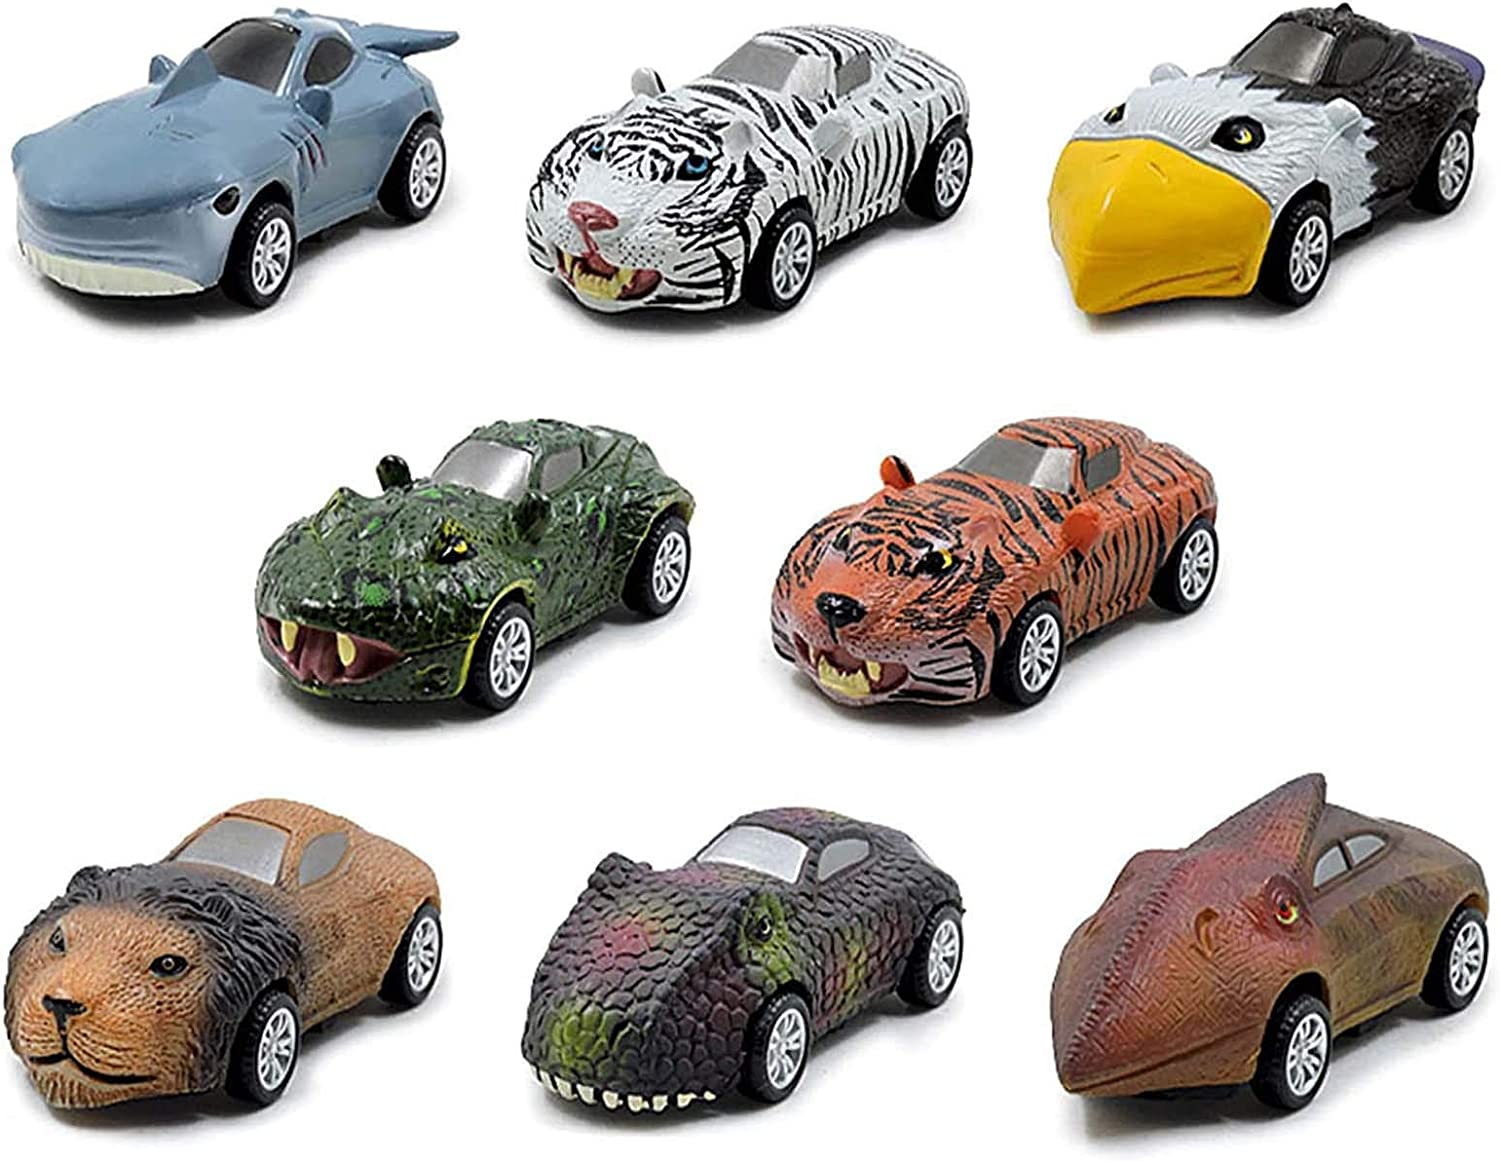 Juyuntong Pull Back Dinosaur Cars, 8 Pack Dinosaur Toy Pull Back Cars, Mini Animal Cars Toys Vehicles Set,Gift for 3-8 Year Old Boy, Pull Back Car Toys Set Toddlers Kids Toys